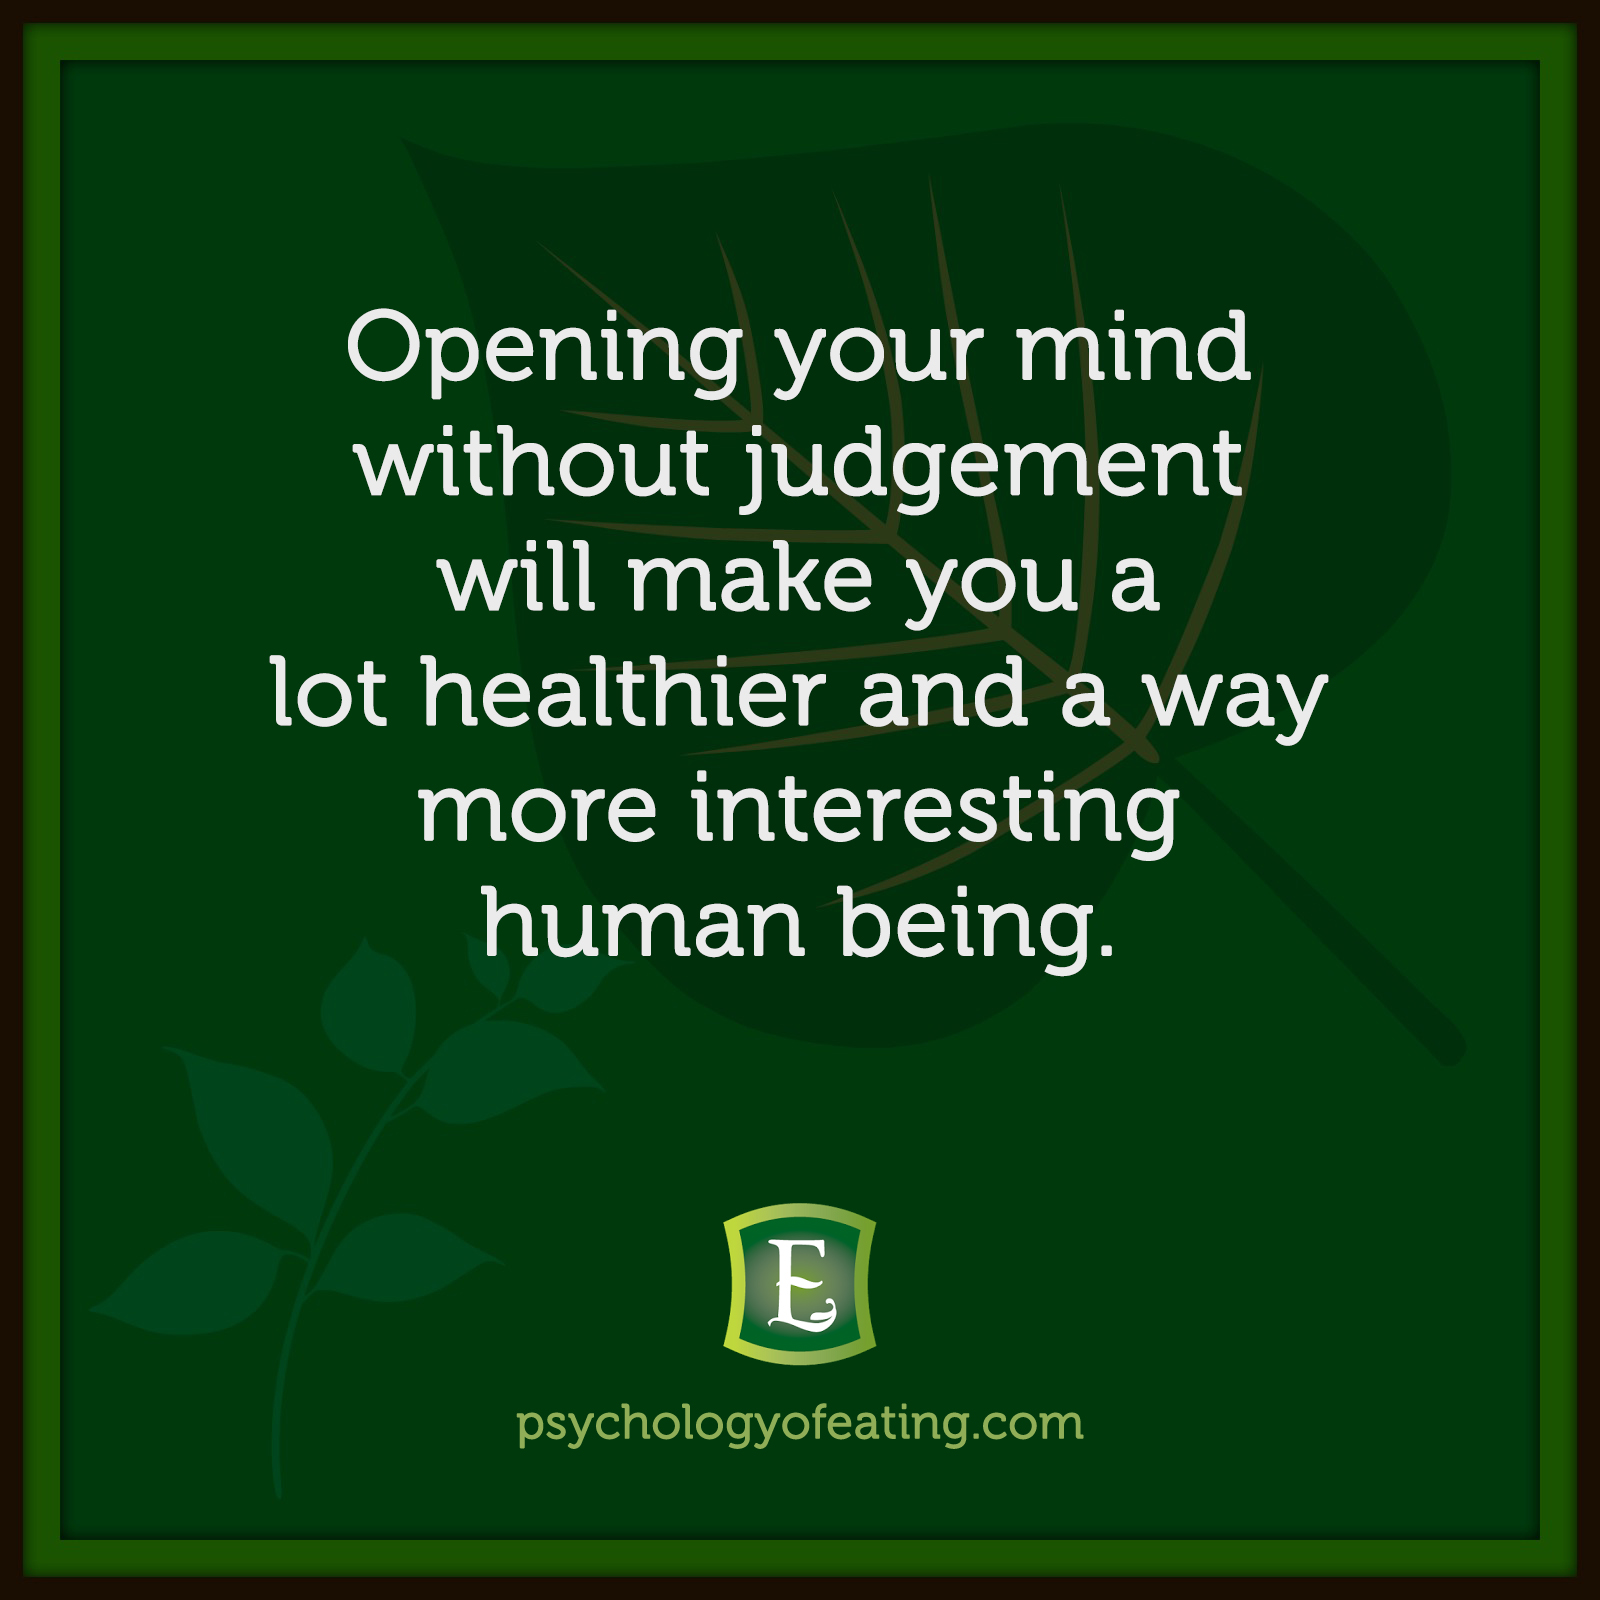 Opening your mind without judgement will make you a lot healthier and a way more interesting human being. #health #nutrition #eatingpsychology #IPE